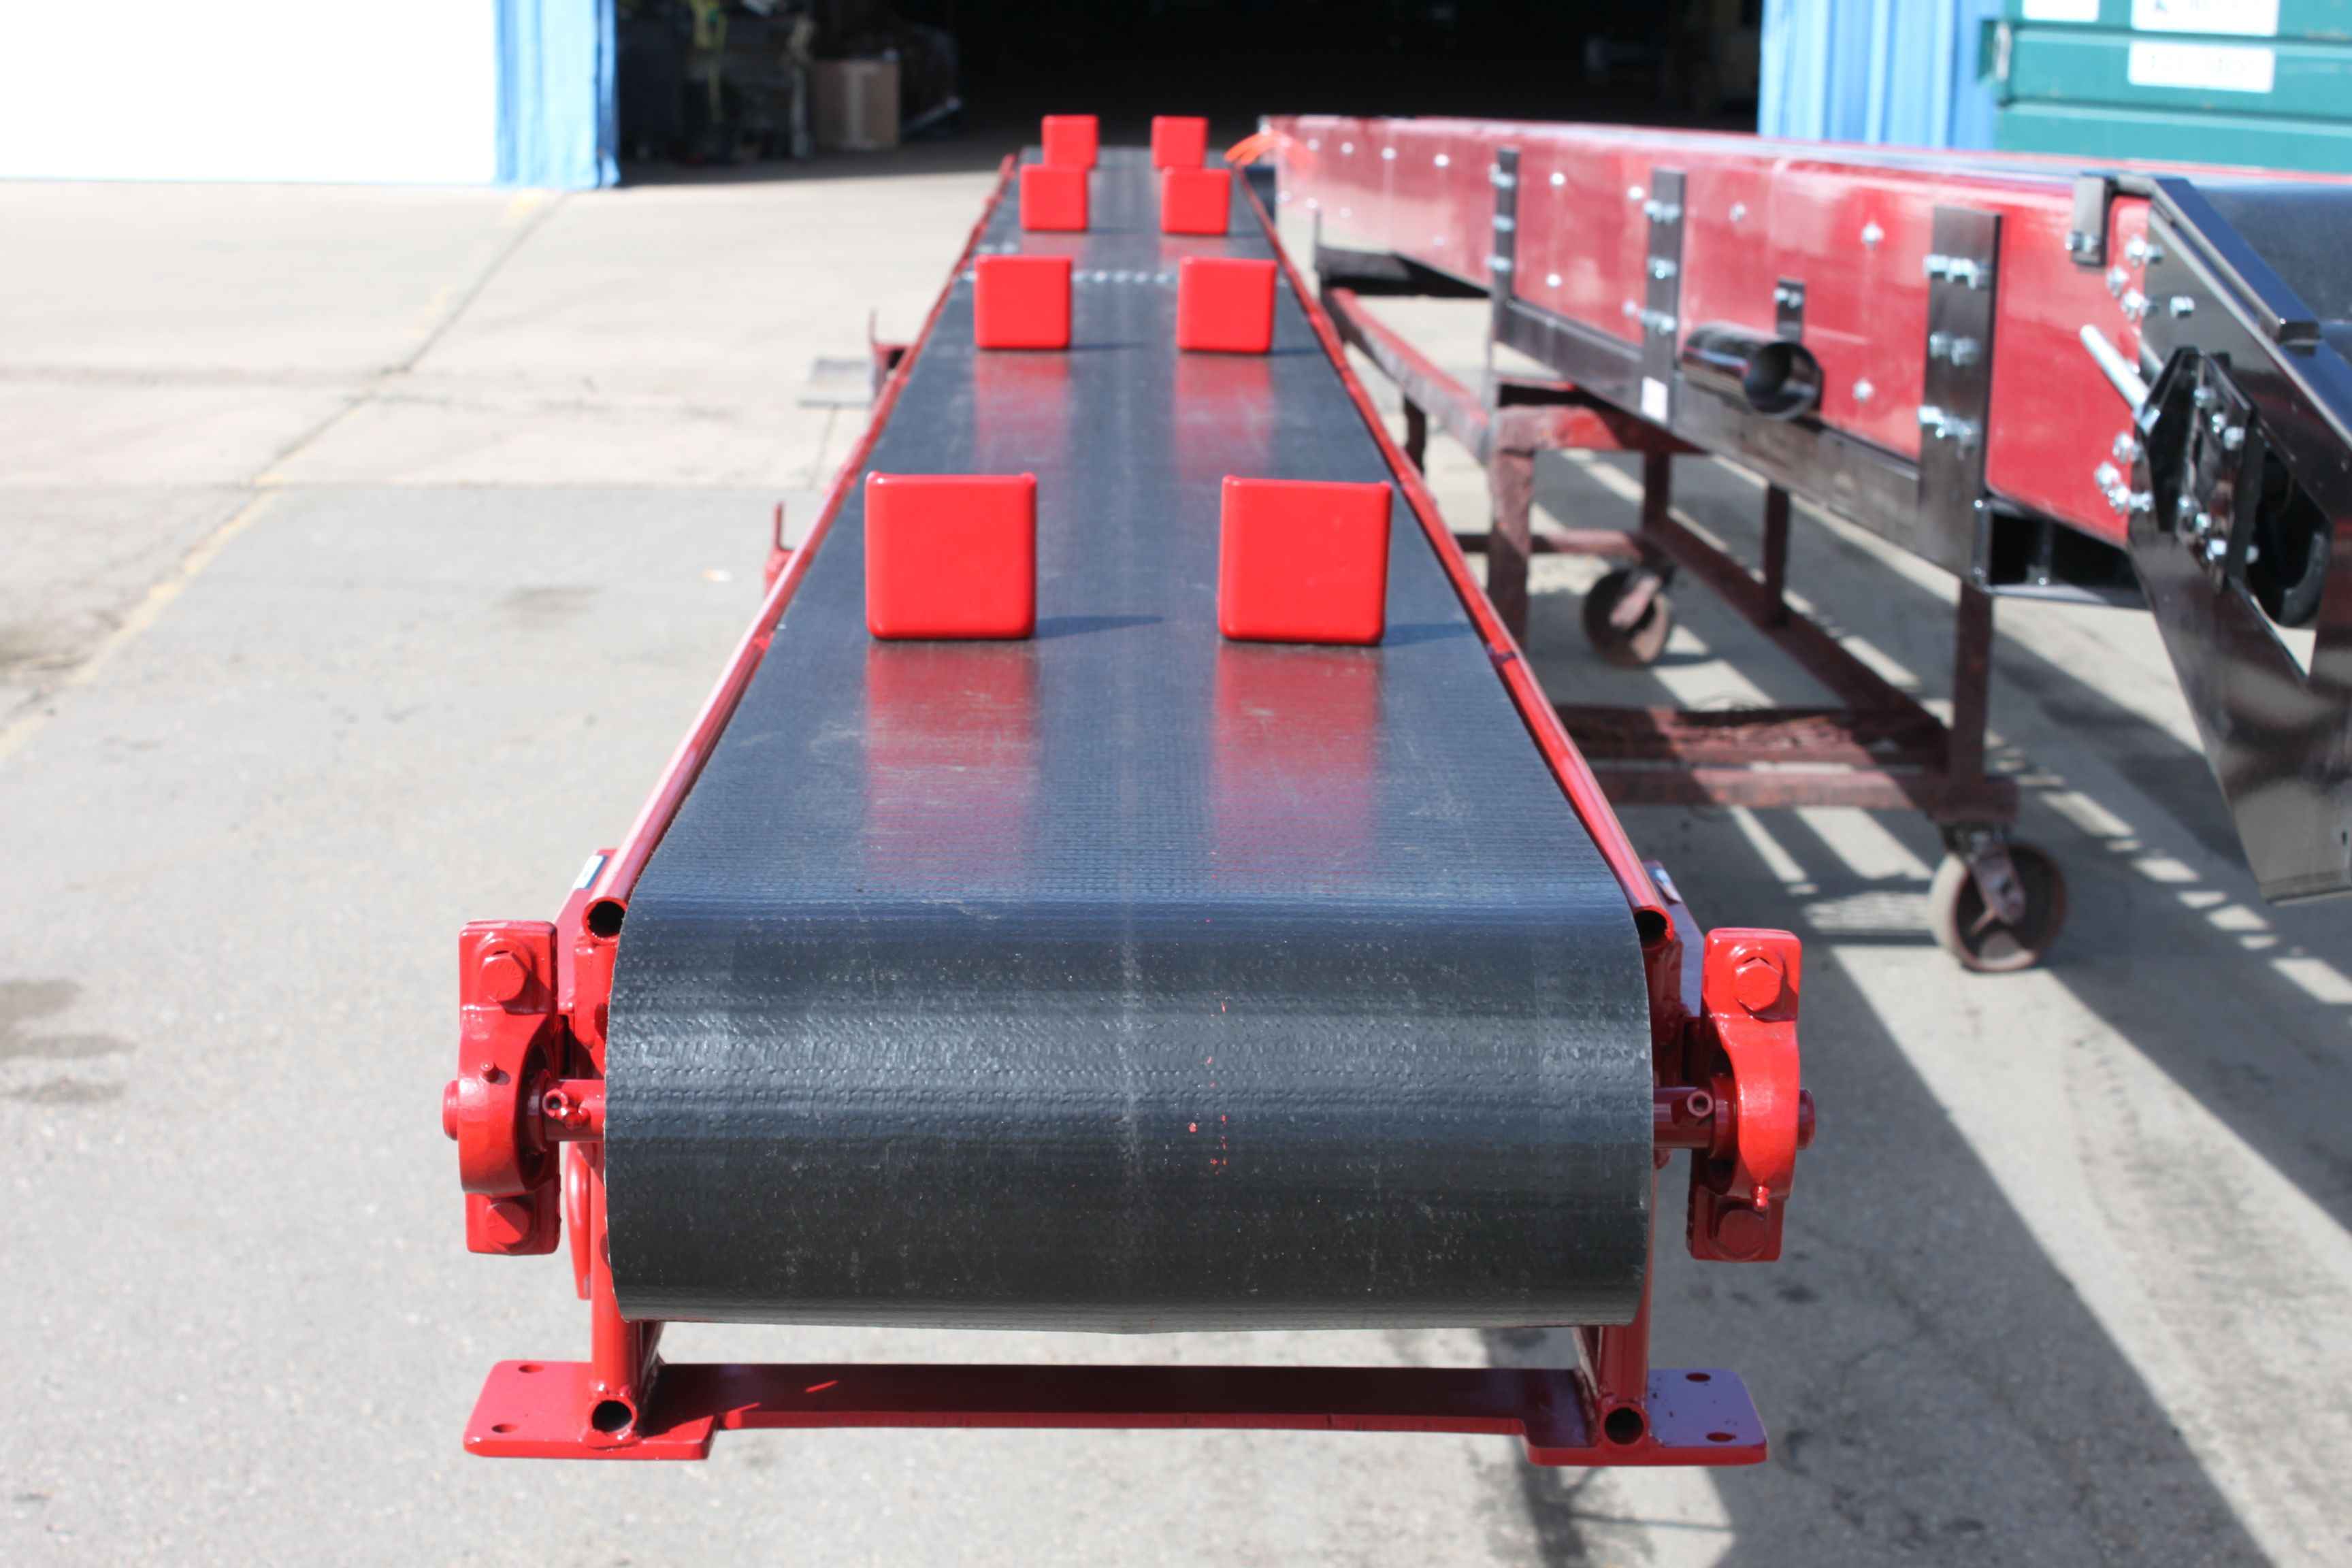 Front view of conveyor